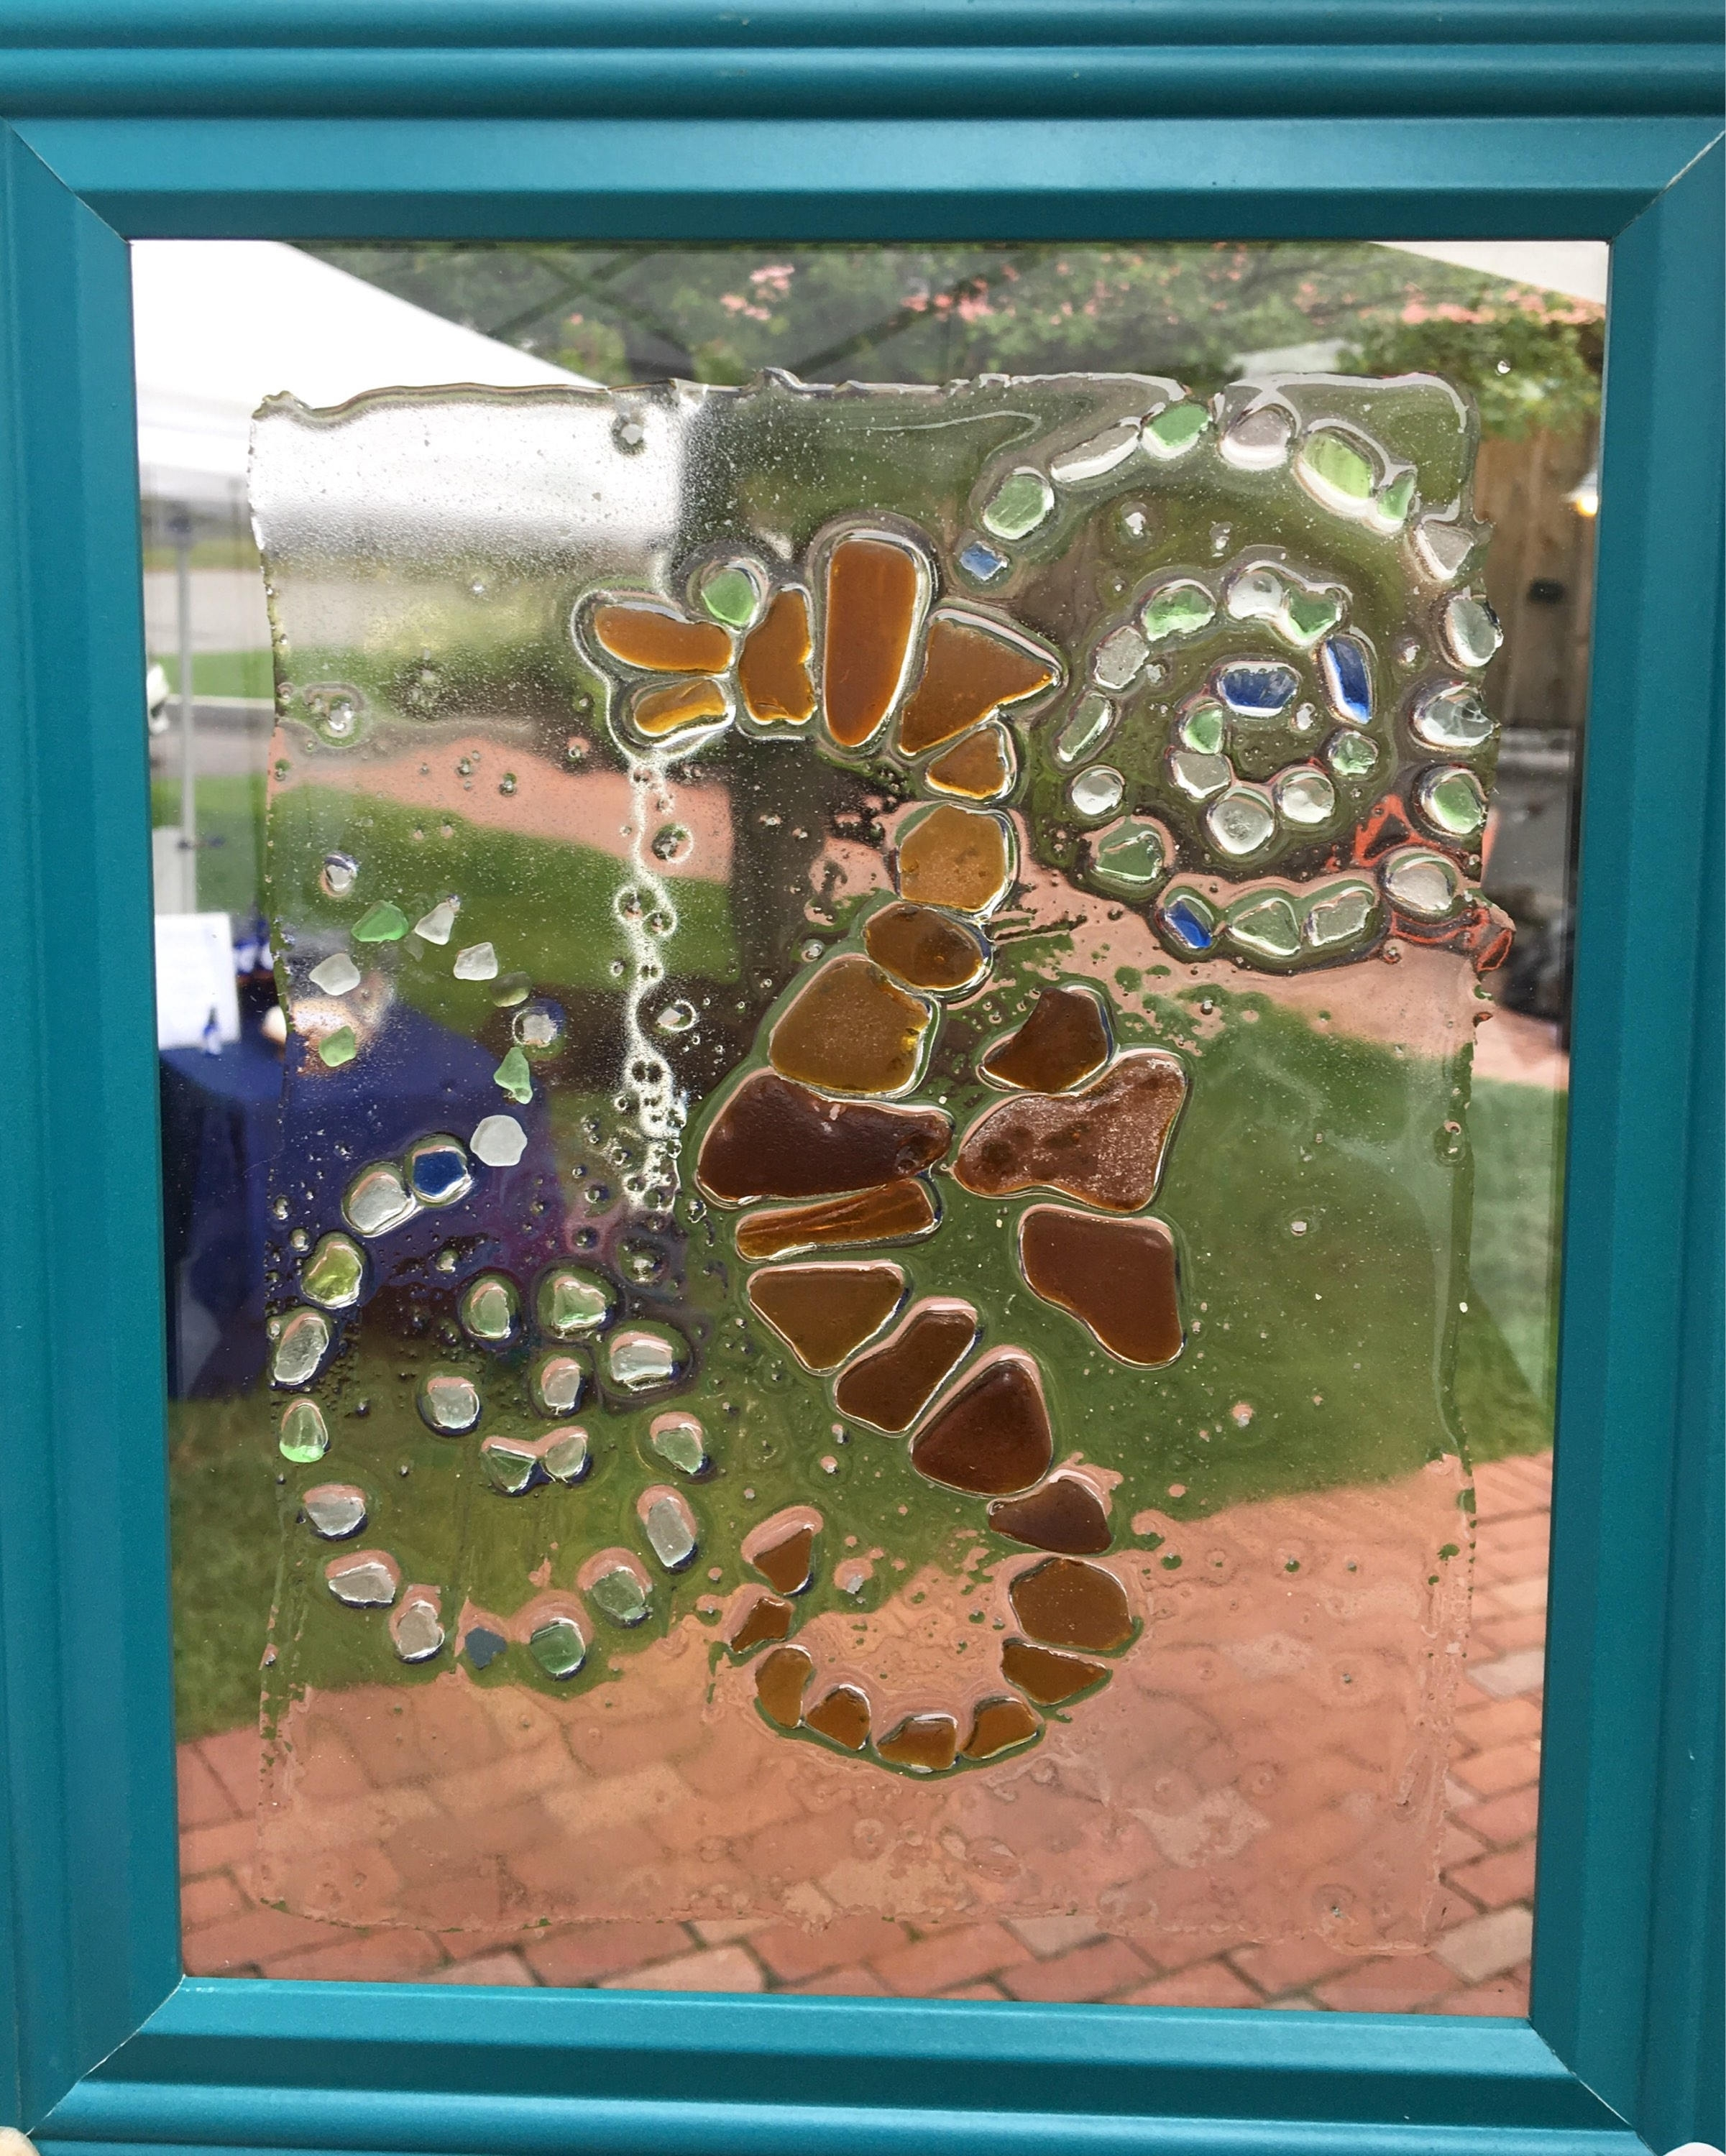 Sea Glass Wall Art: Seahorse Design Made From Genuine Sea Glass 8X10 Throughout Sea Glass Wall Art (View 18 of 20)